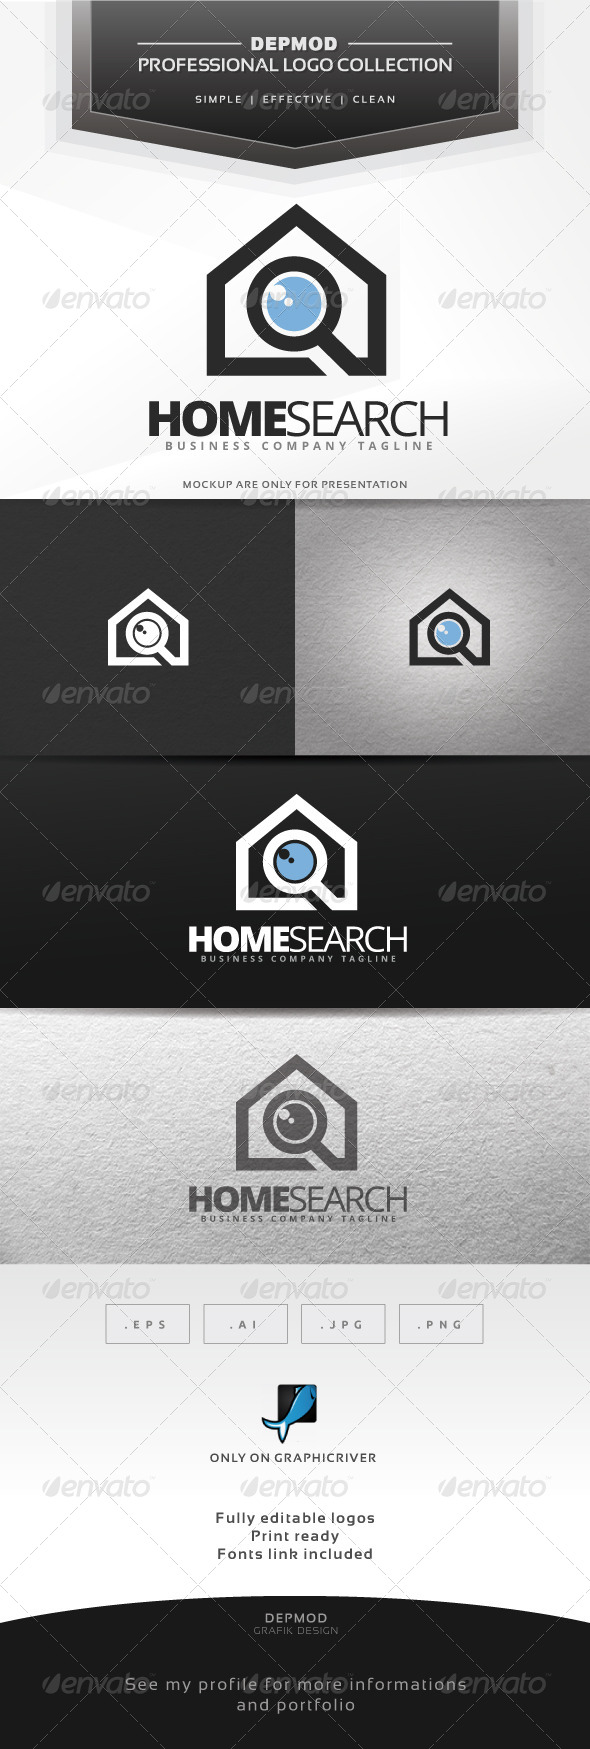 Home Search Logo - Symbols Logo Templates